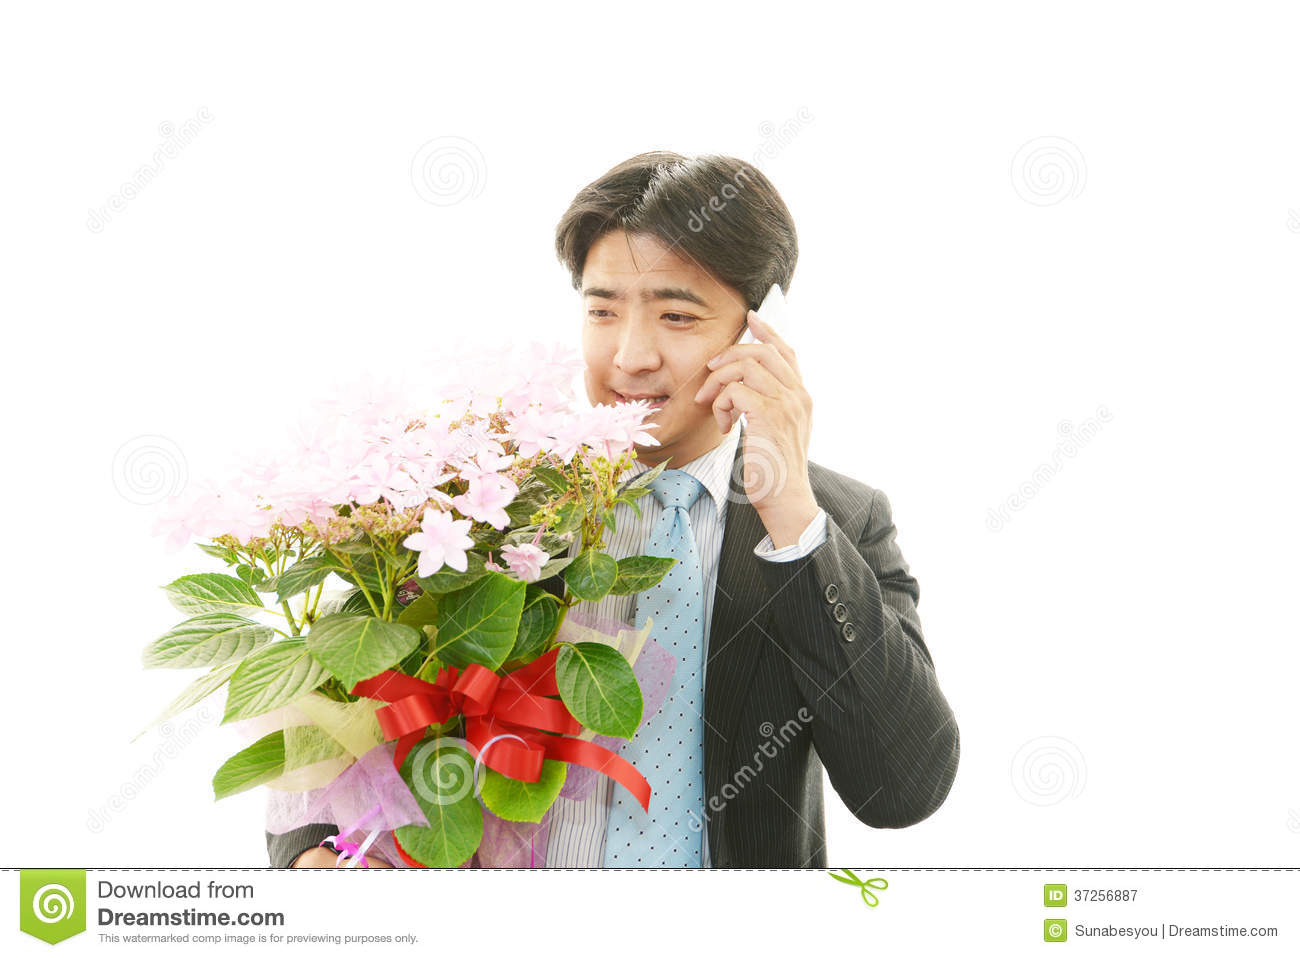 Man holding flower bouquet stock image image of salaried 37256887 man holding flower bouquet izmirmasajfo Image collections